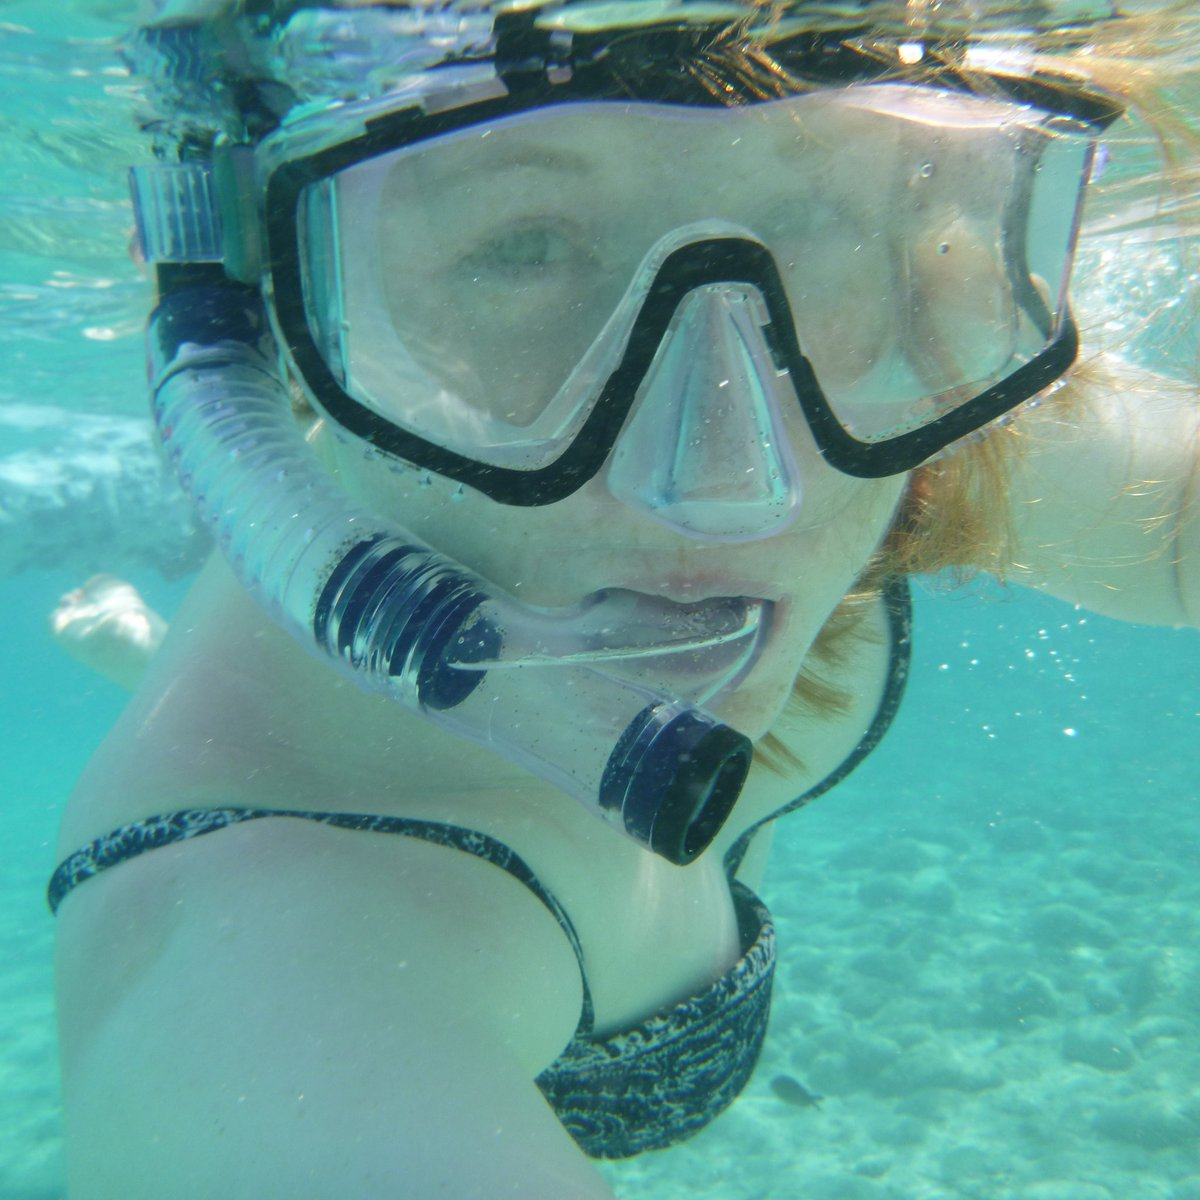 Carly Priestley On Twitter Loving The Underwater Camera Zante Holiday Argassi Snorkeling